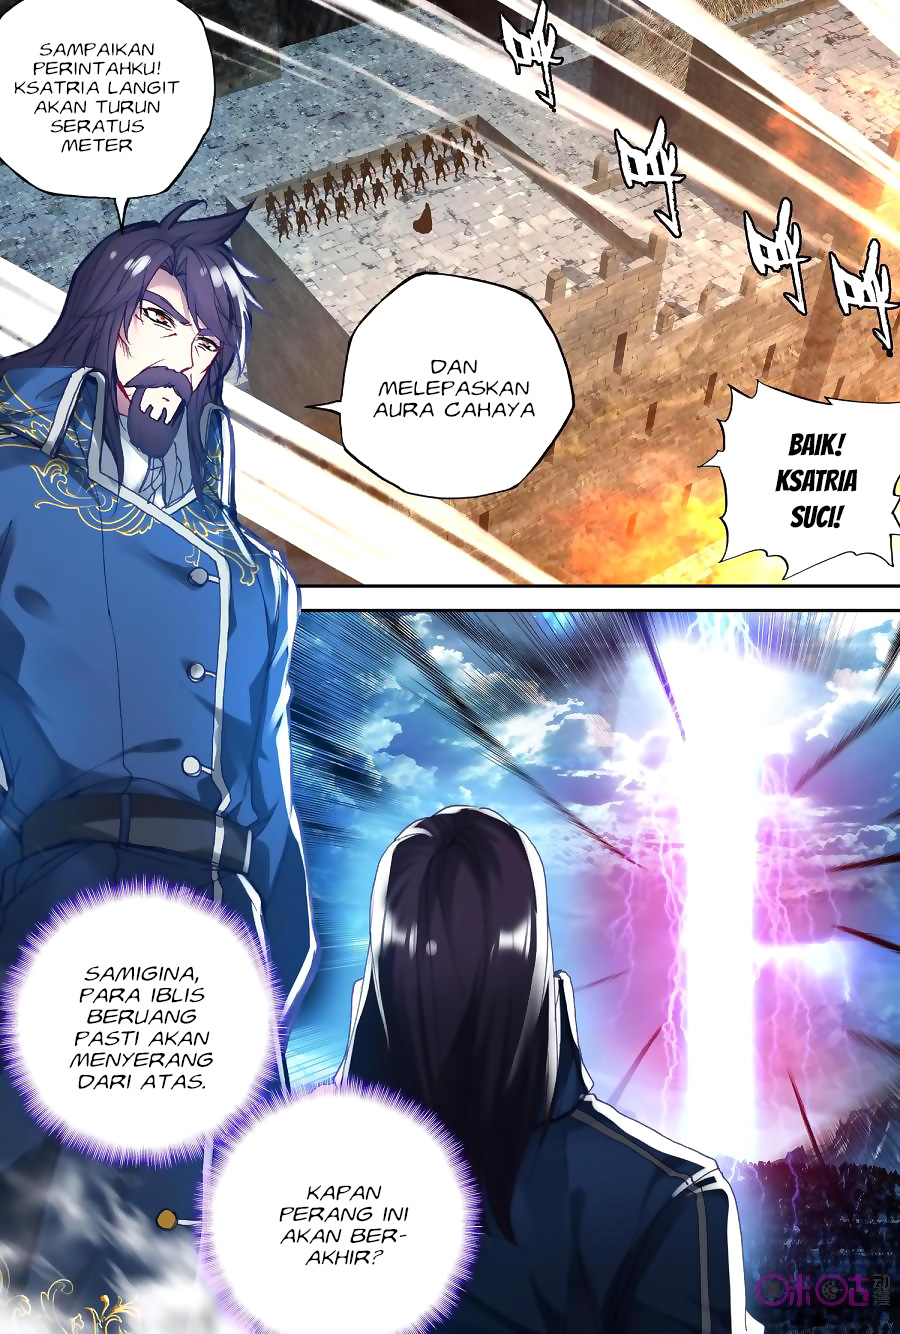 Komik shen yin wang zuo 152 - chapter 152 153 Indonesia shen yin wang zuo 152 - chapter 152 Terbaru 12|Baca Manga Komik Indonesia